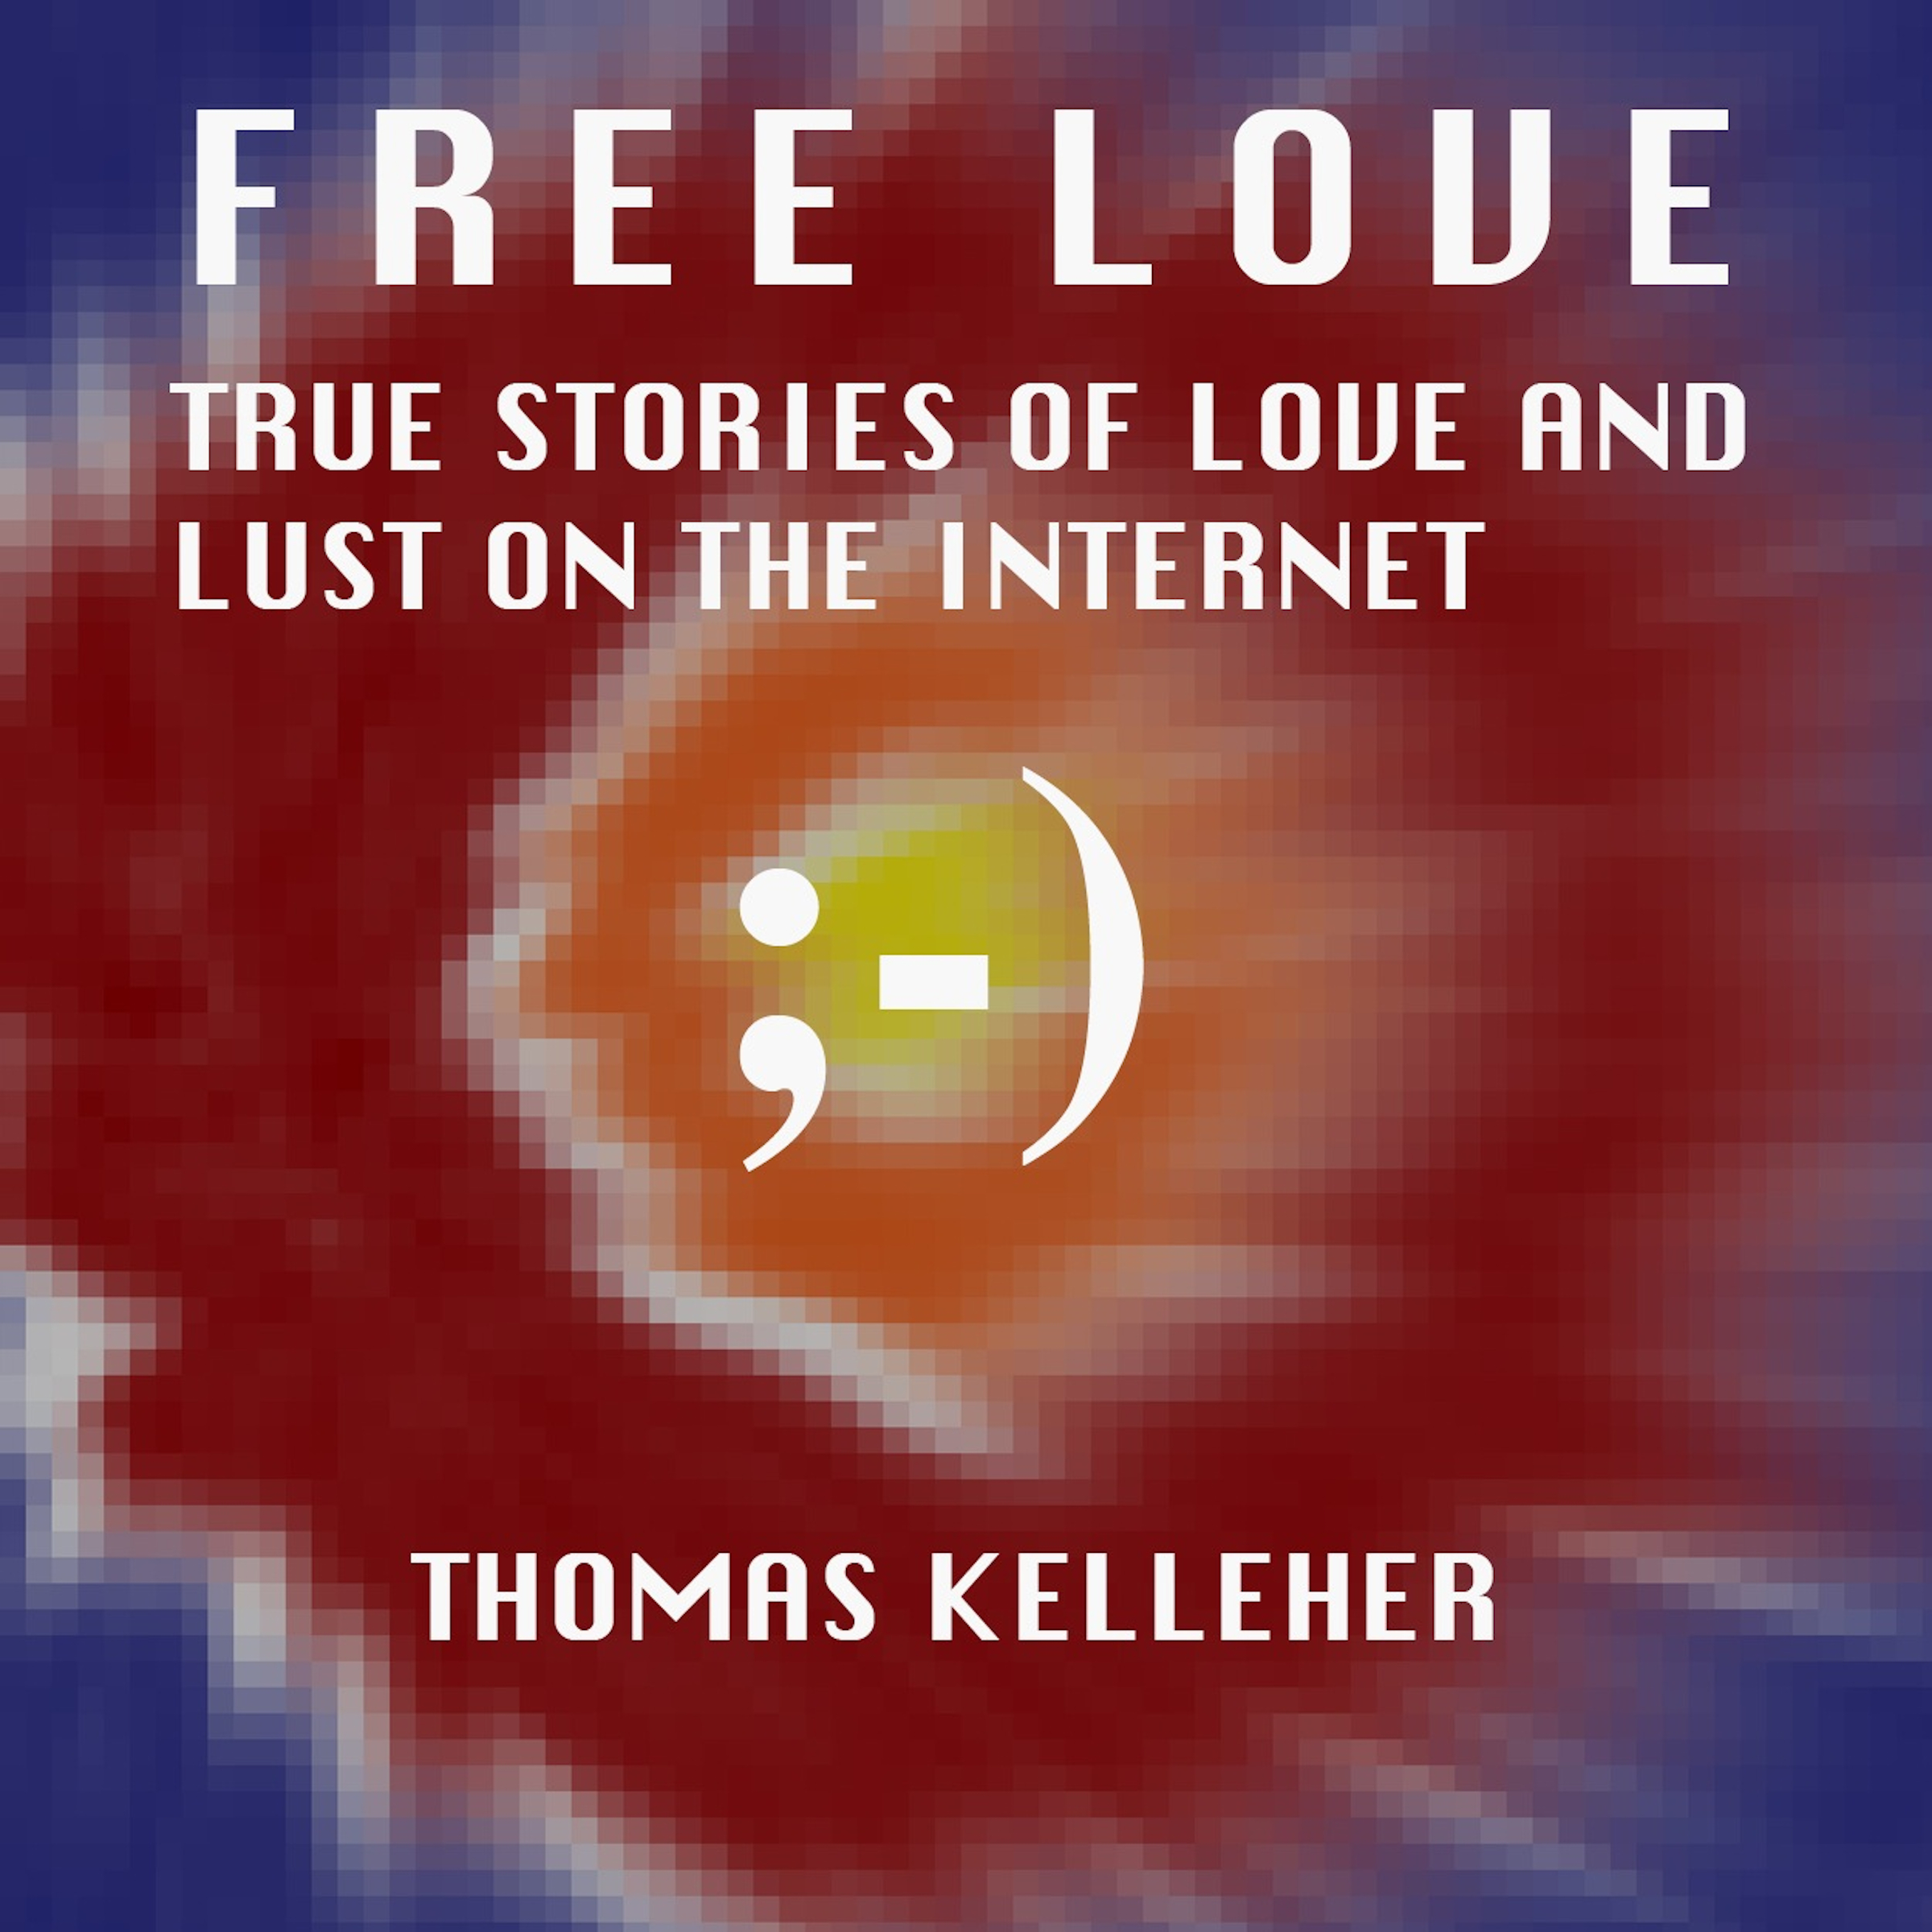 Free Love ACX Audio Book Cover copy.jpg